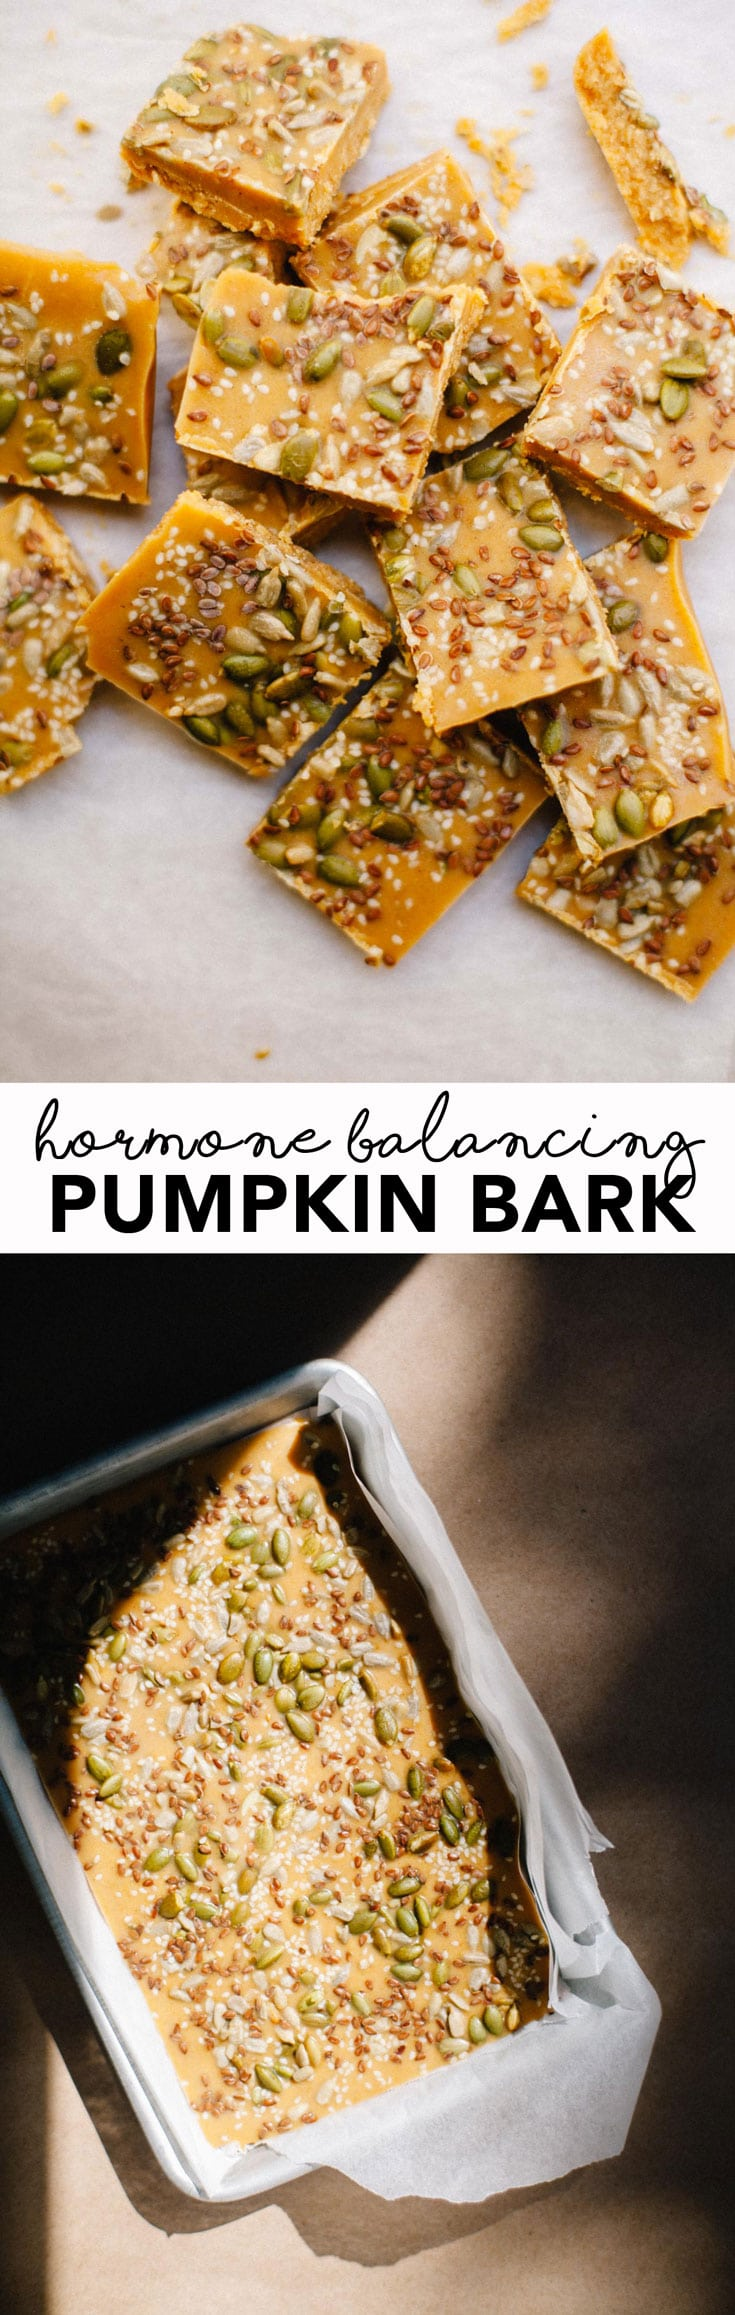 This Healthy Seedy Pumpkin Bark is packed with hormone balancing seeds, nut butter, healthy fats, pumpkin puree, and lightly sweetened with maple syrup! #pumpkin #recipe #healthy #vegan #brewinghappiness